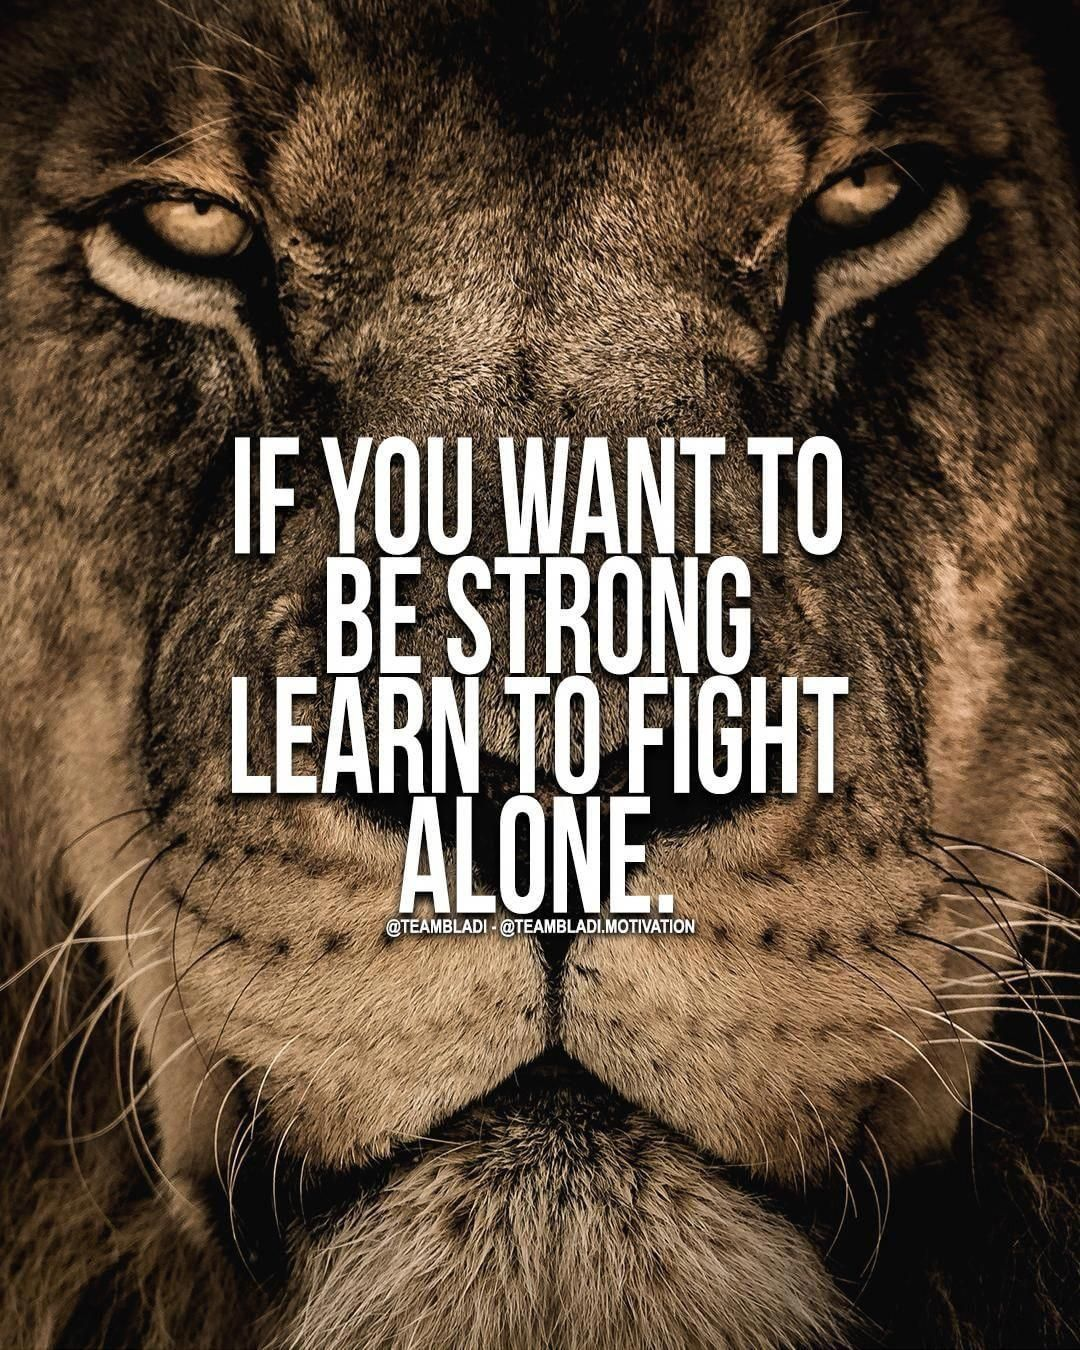 Fighting Alone Quotes : fighting, alone, quotes, Strong, Learn, Fight, Alone!, #motivation, #quotes, #quoteoftheday, #wisdom, #truth, #fashion, #animal, #l…, Warrior, Quotes,, Fighting, Quotes